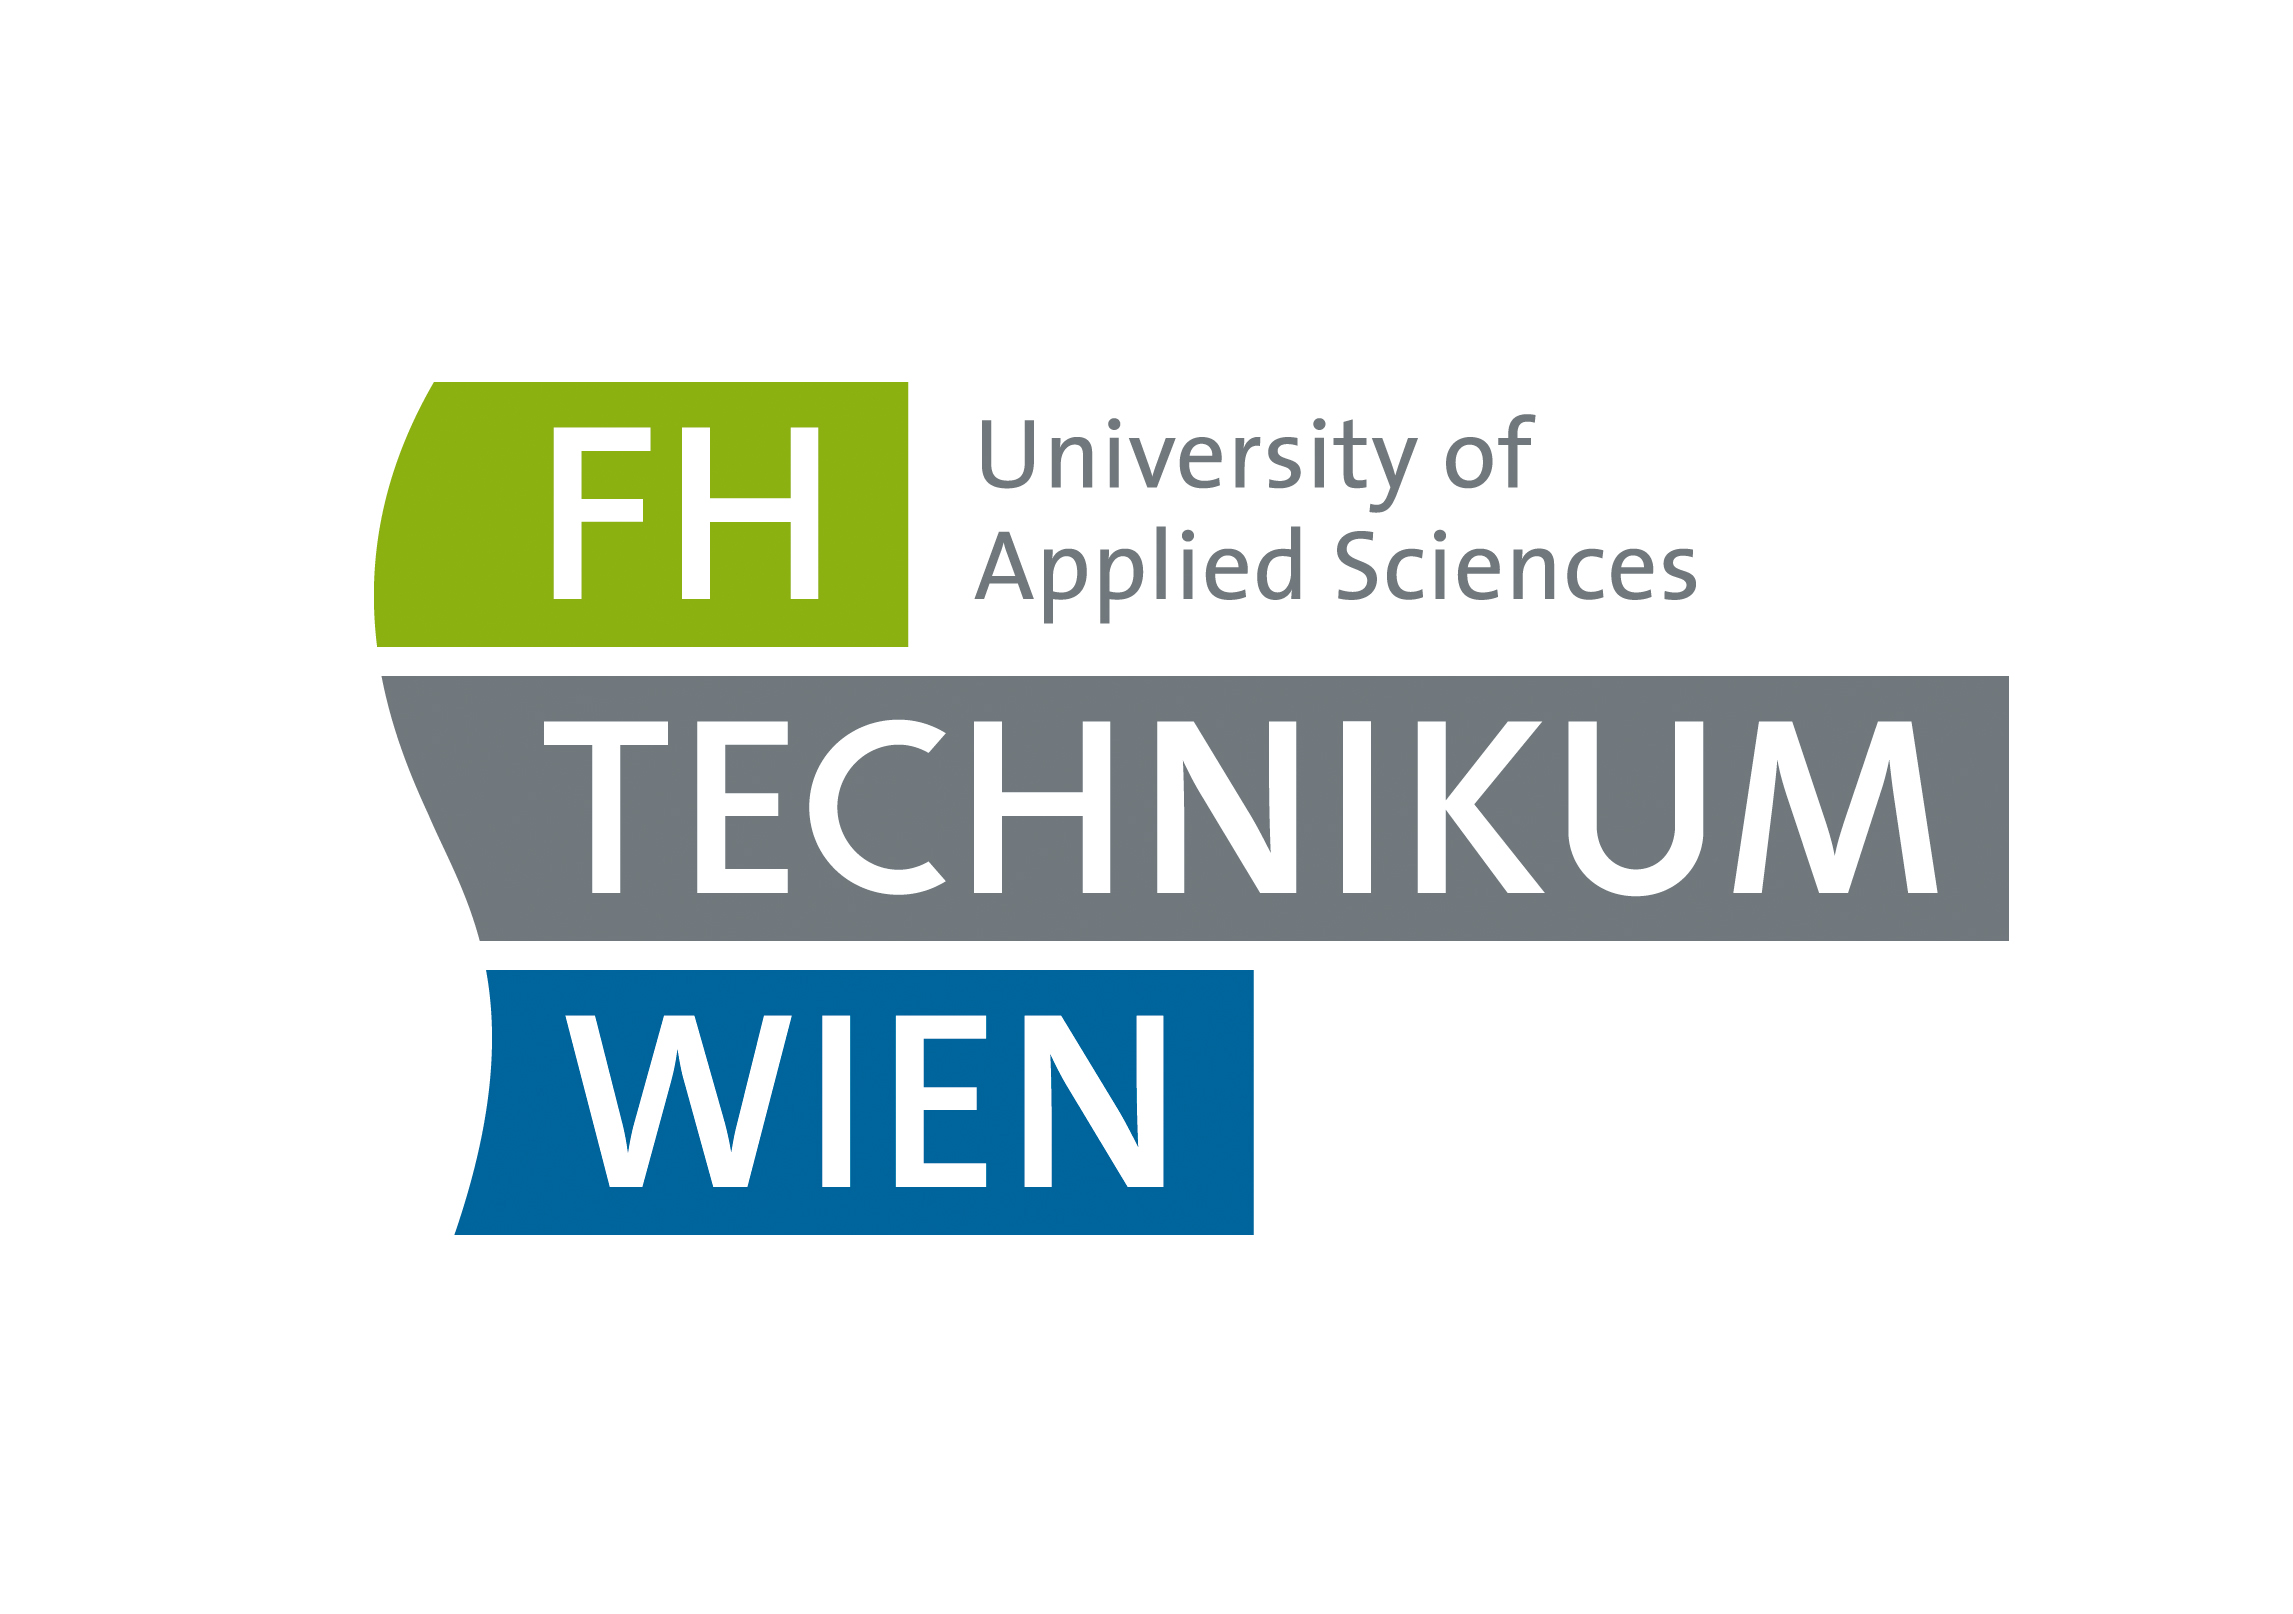 FHTW Logo Farbe transparent online